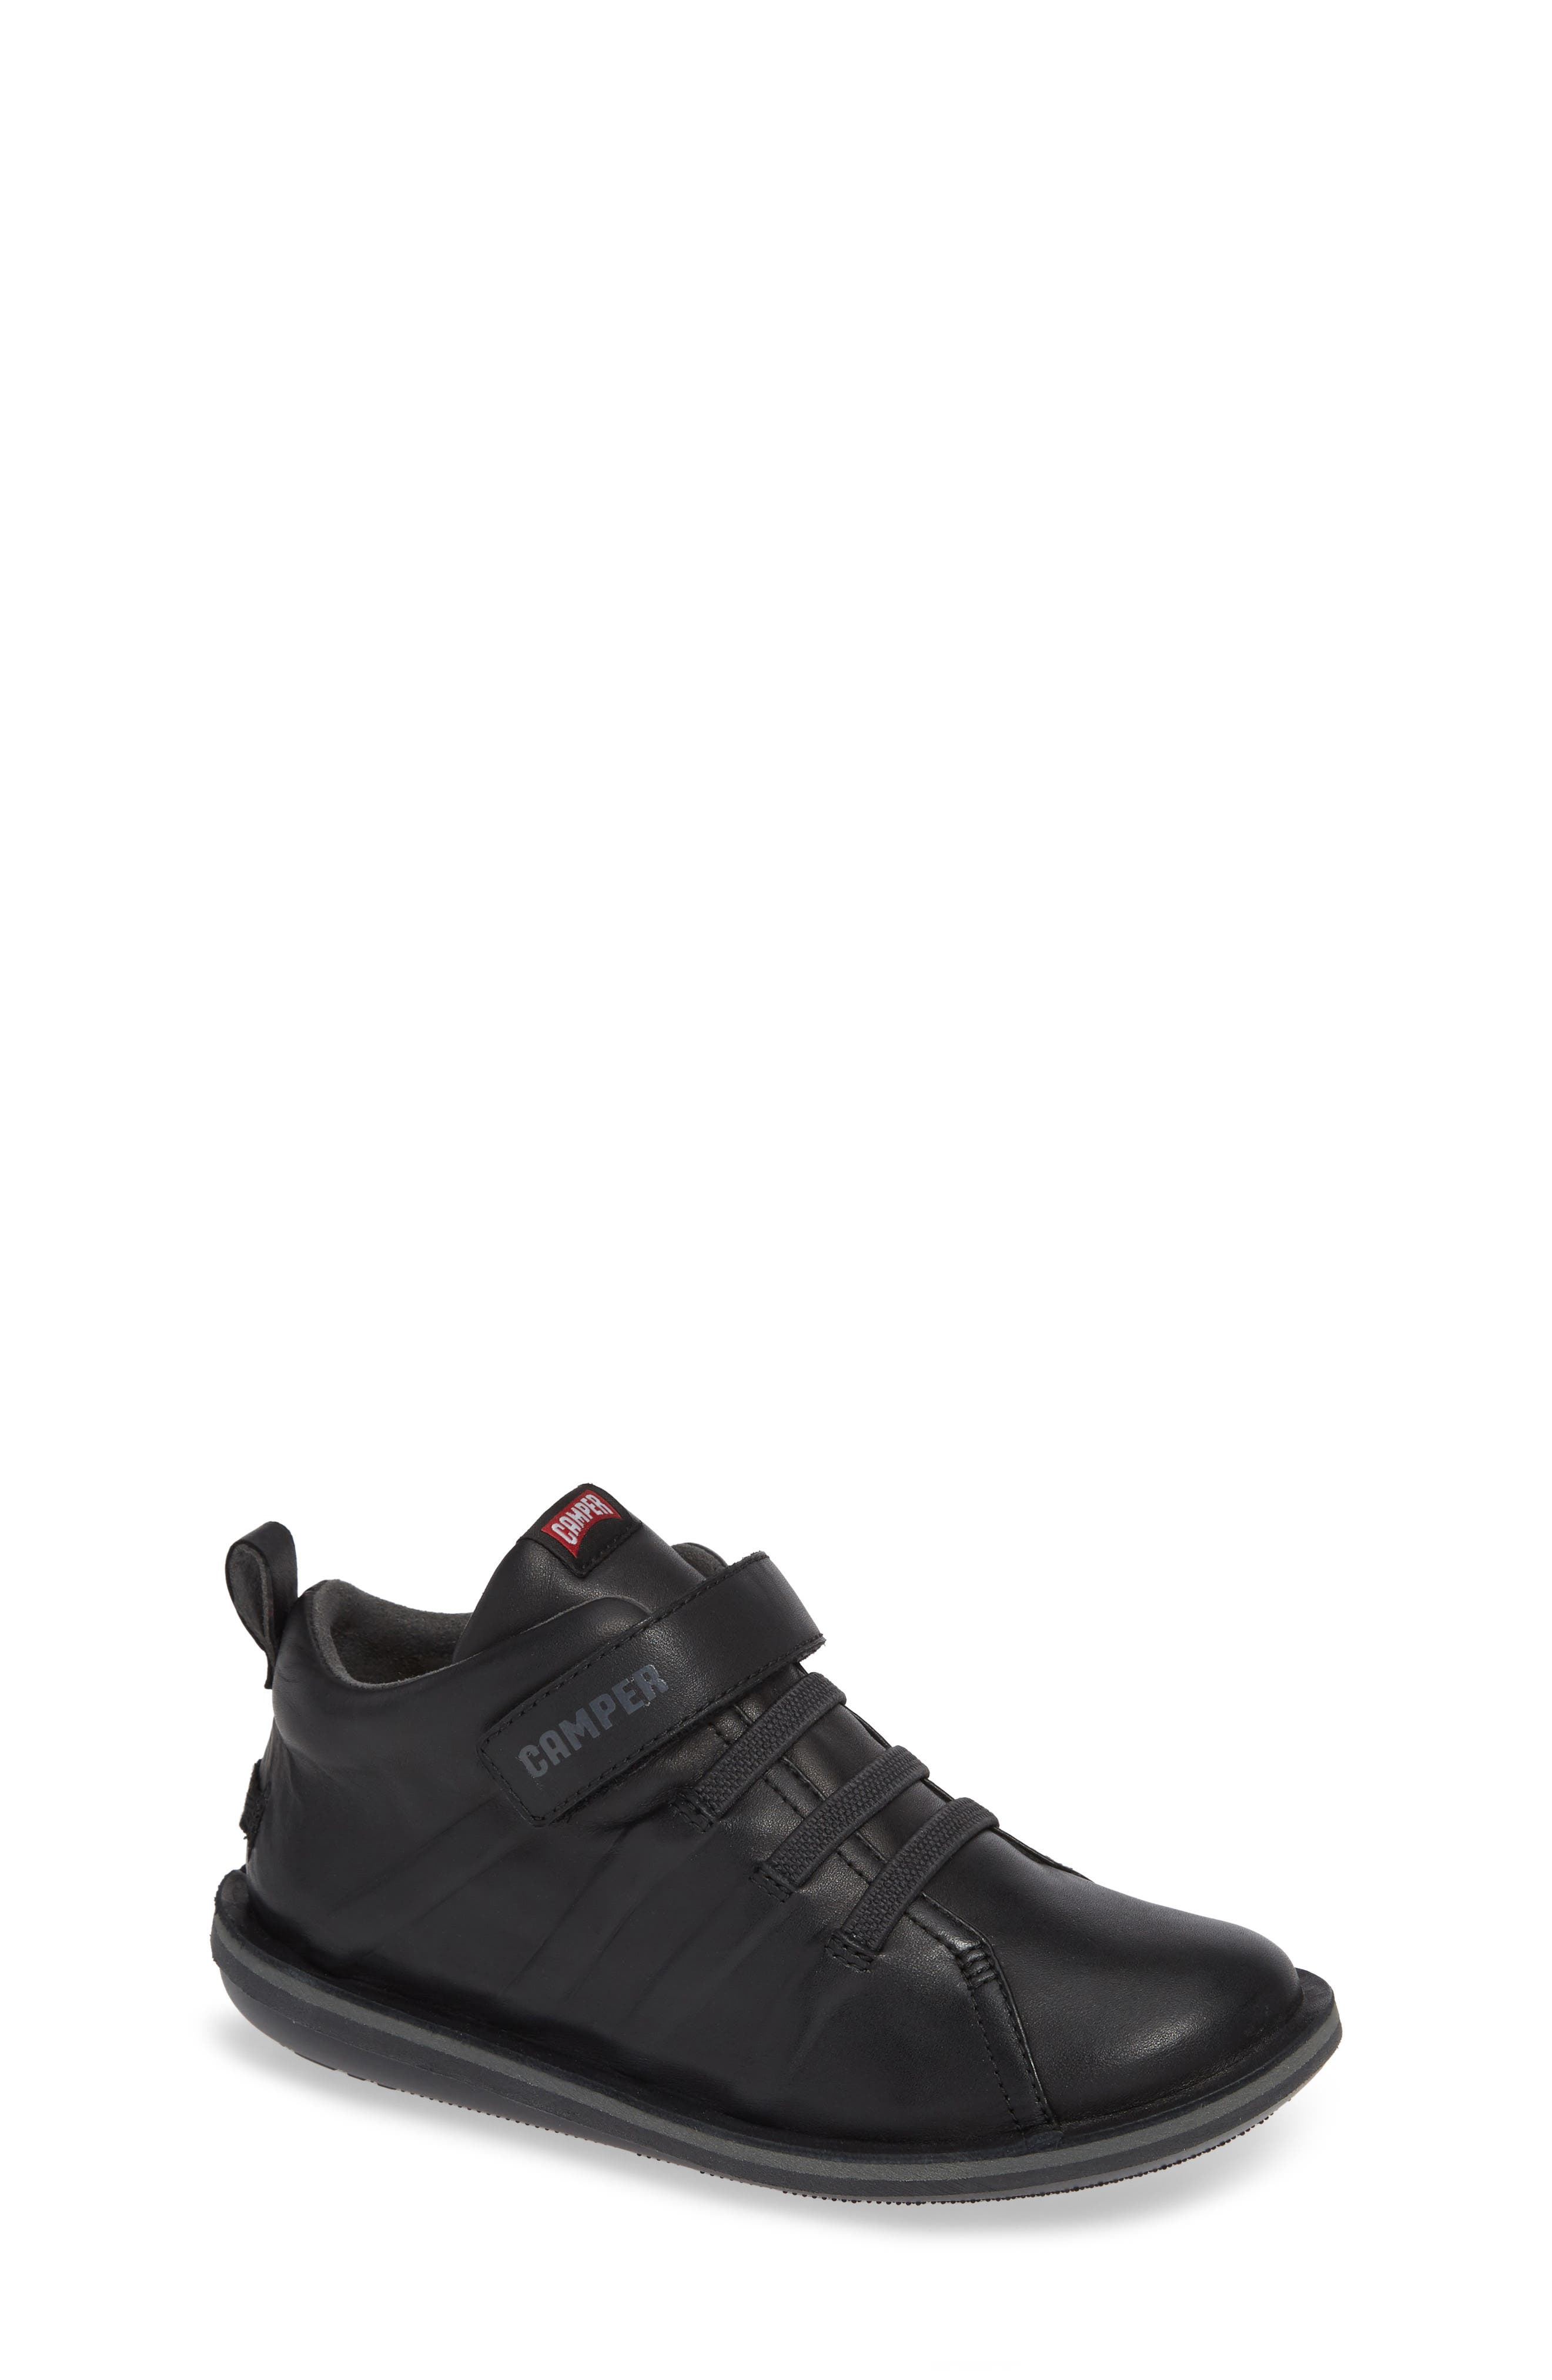 Beetle Water Resistant Sneaker,                         Main,                         color, BLACK